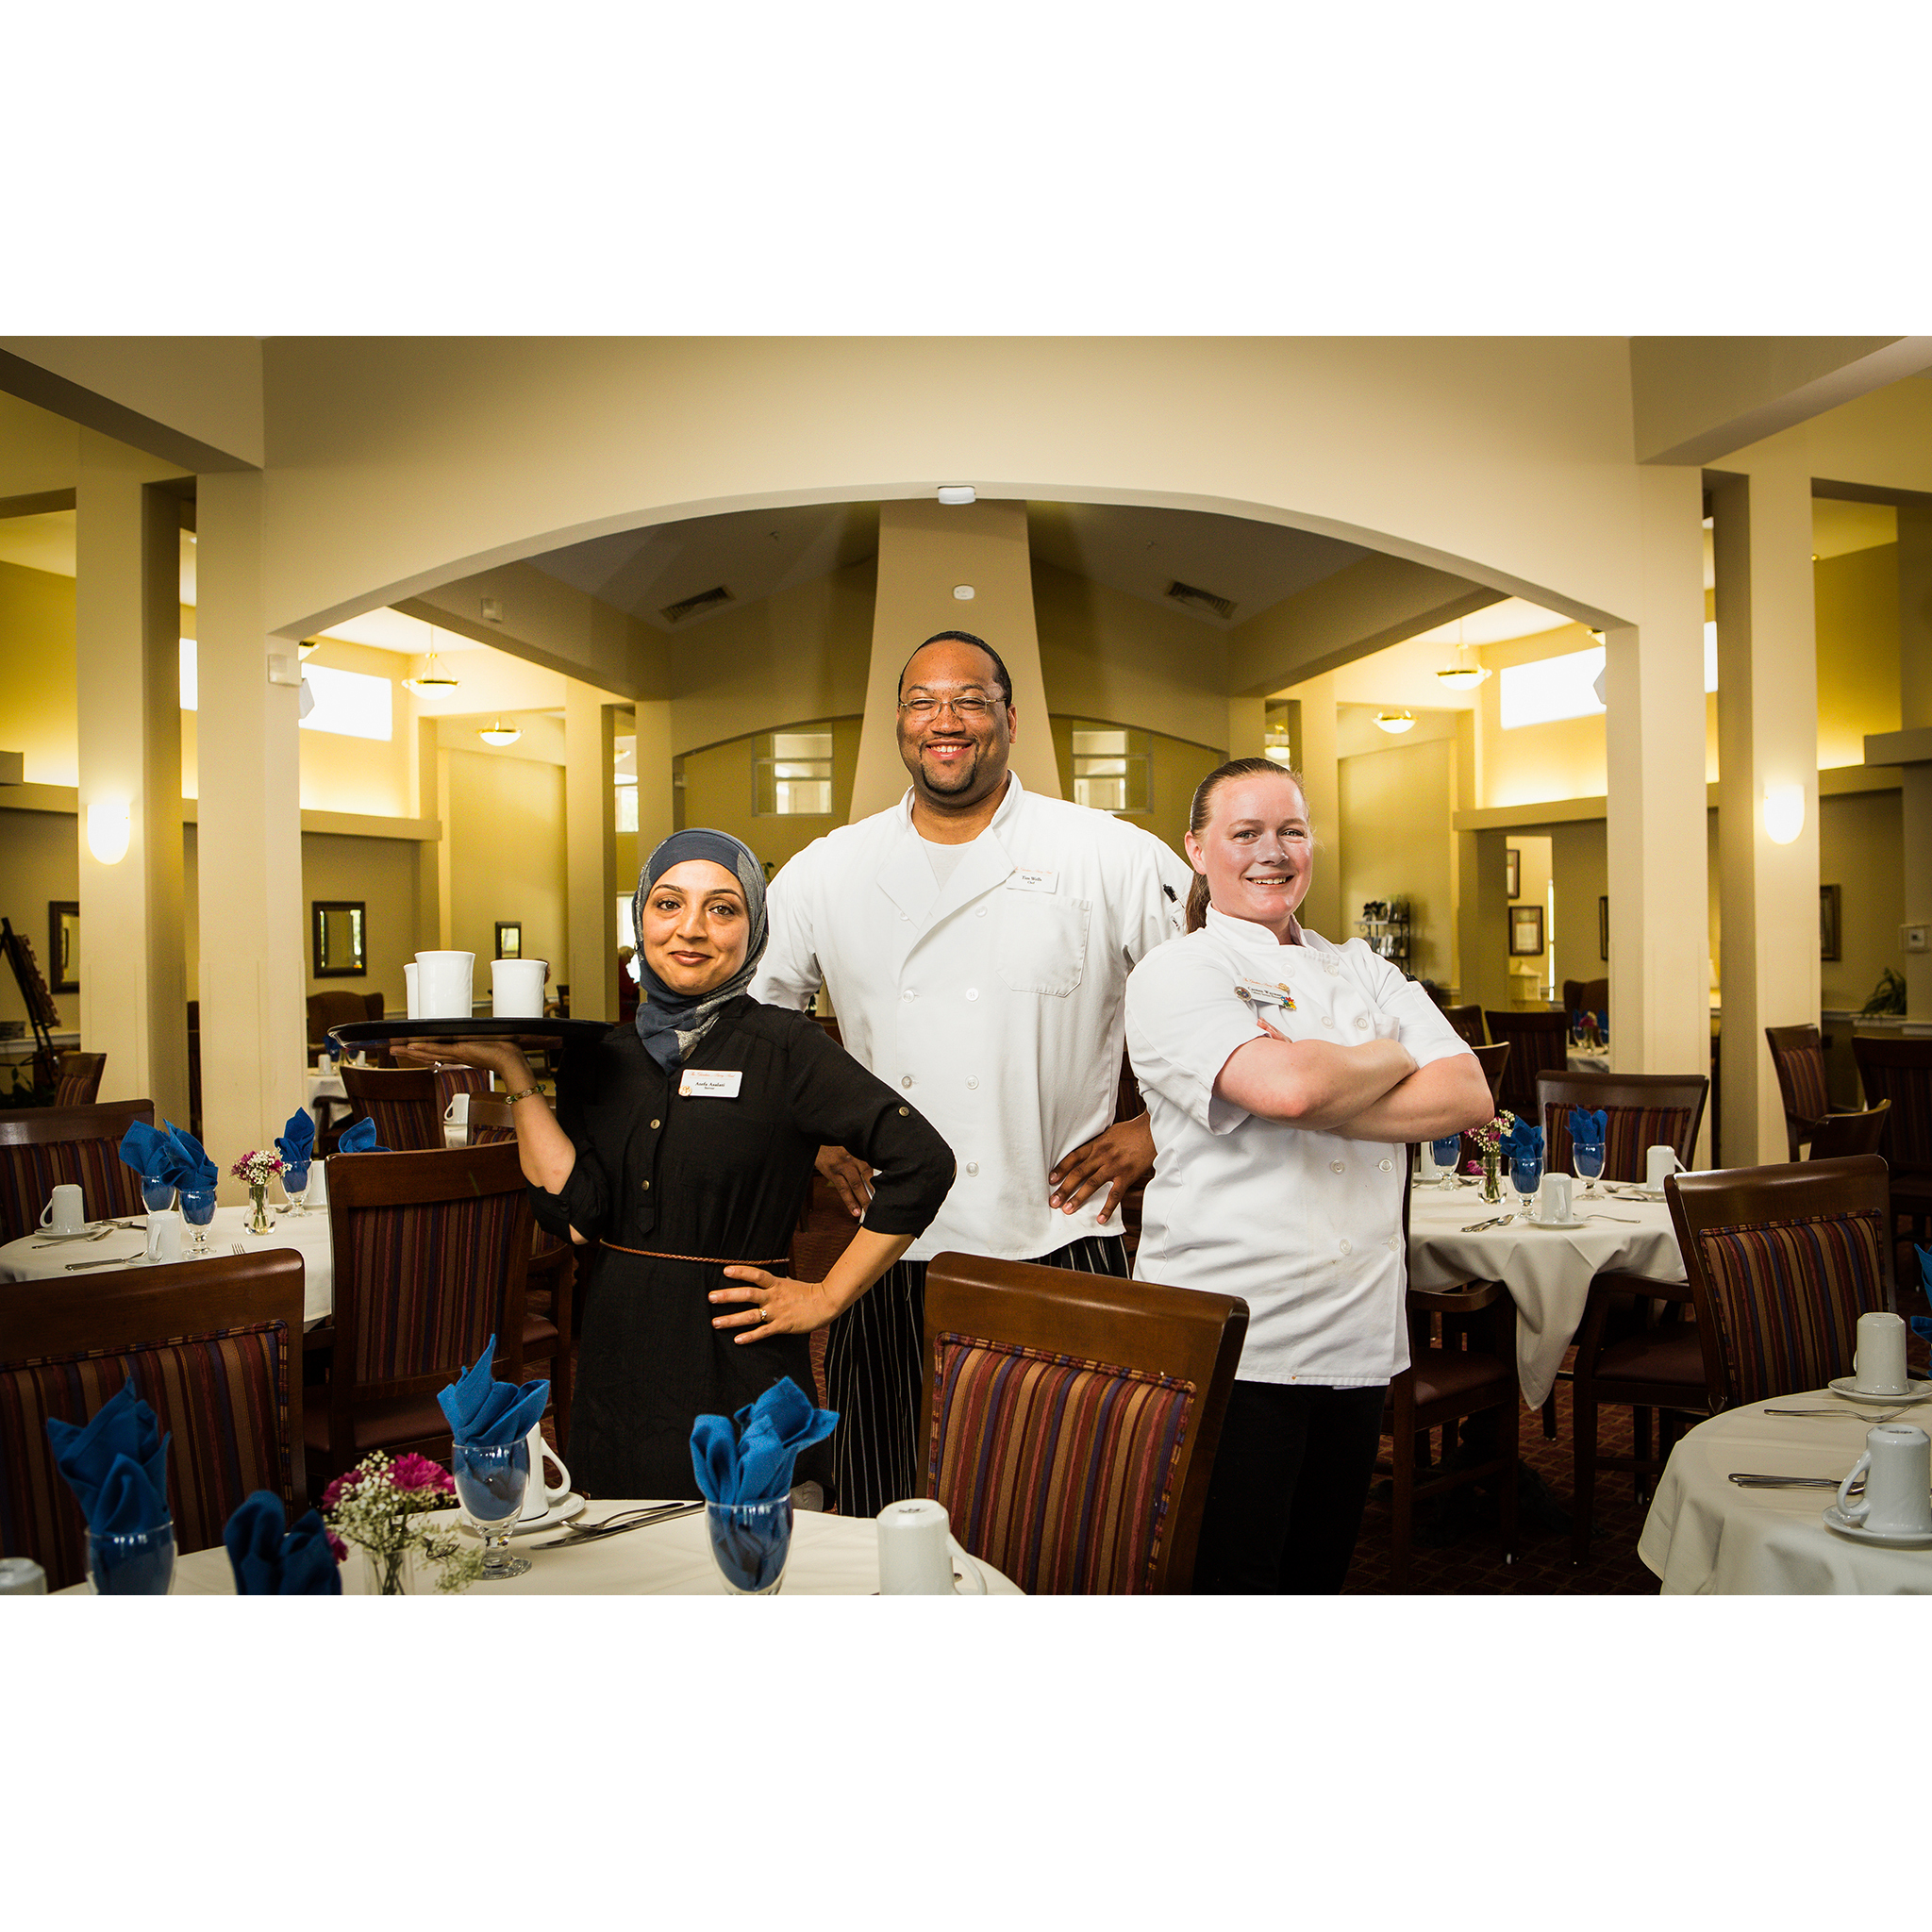 Portrait of restaurant server and chefs